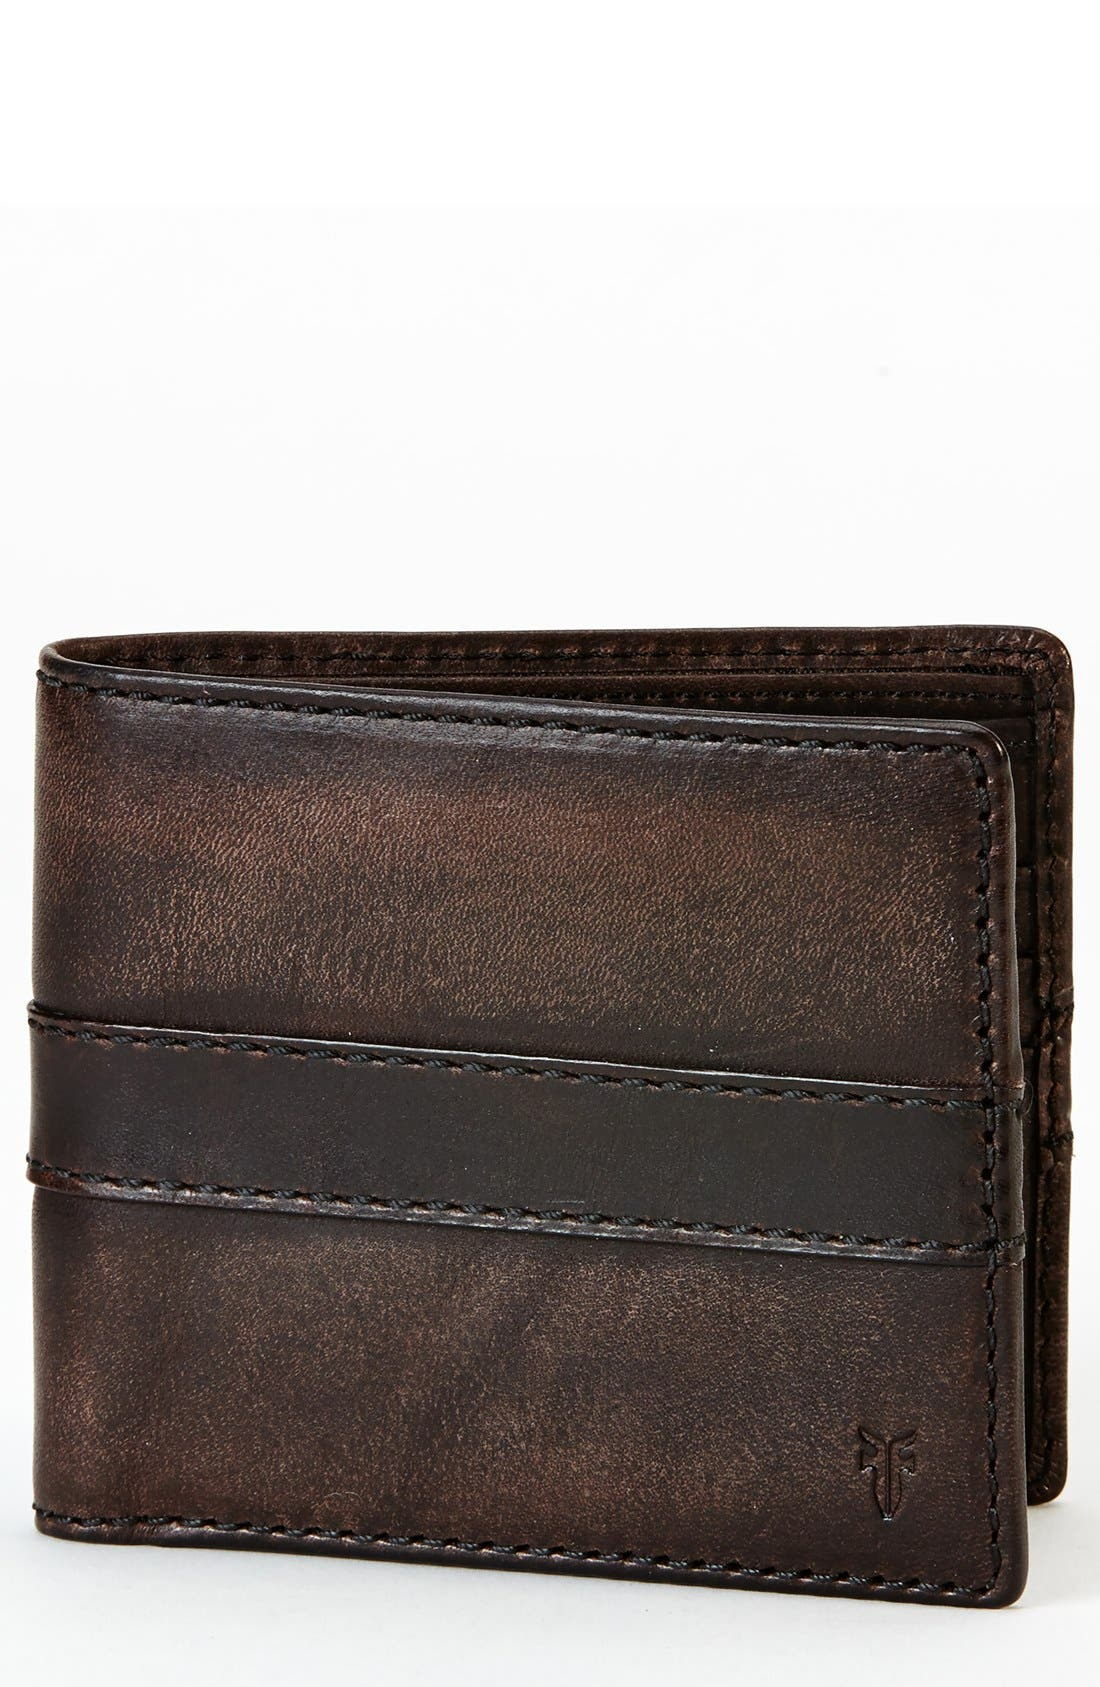 Frye 'Oliver' Leather Billfold Wallet